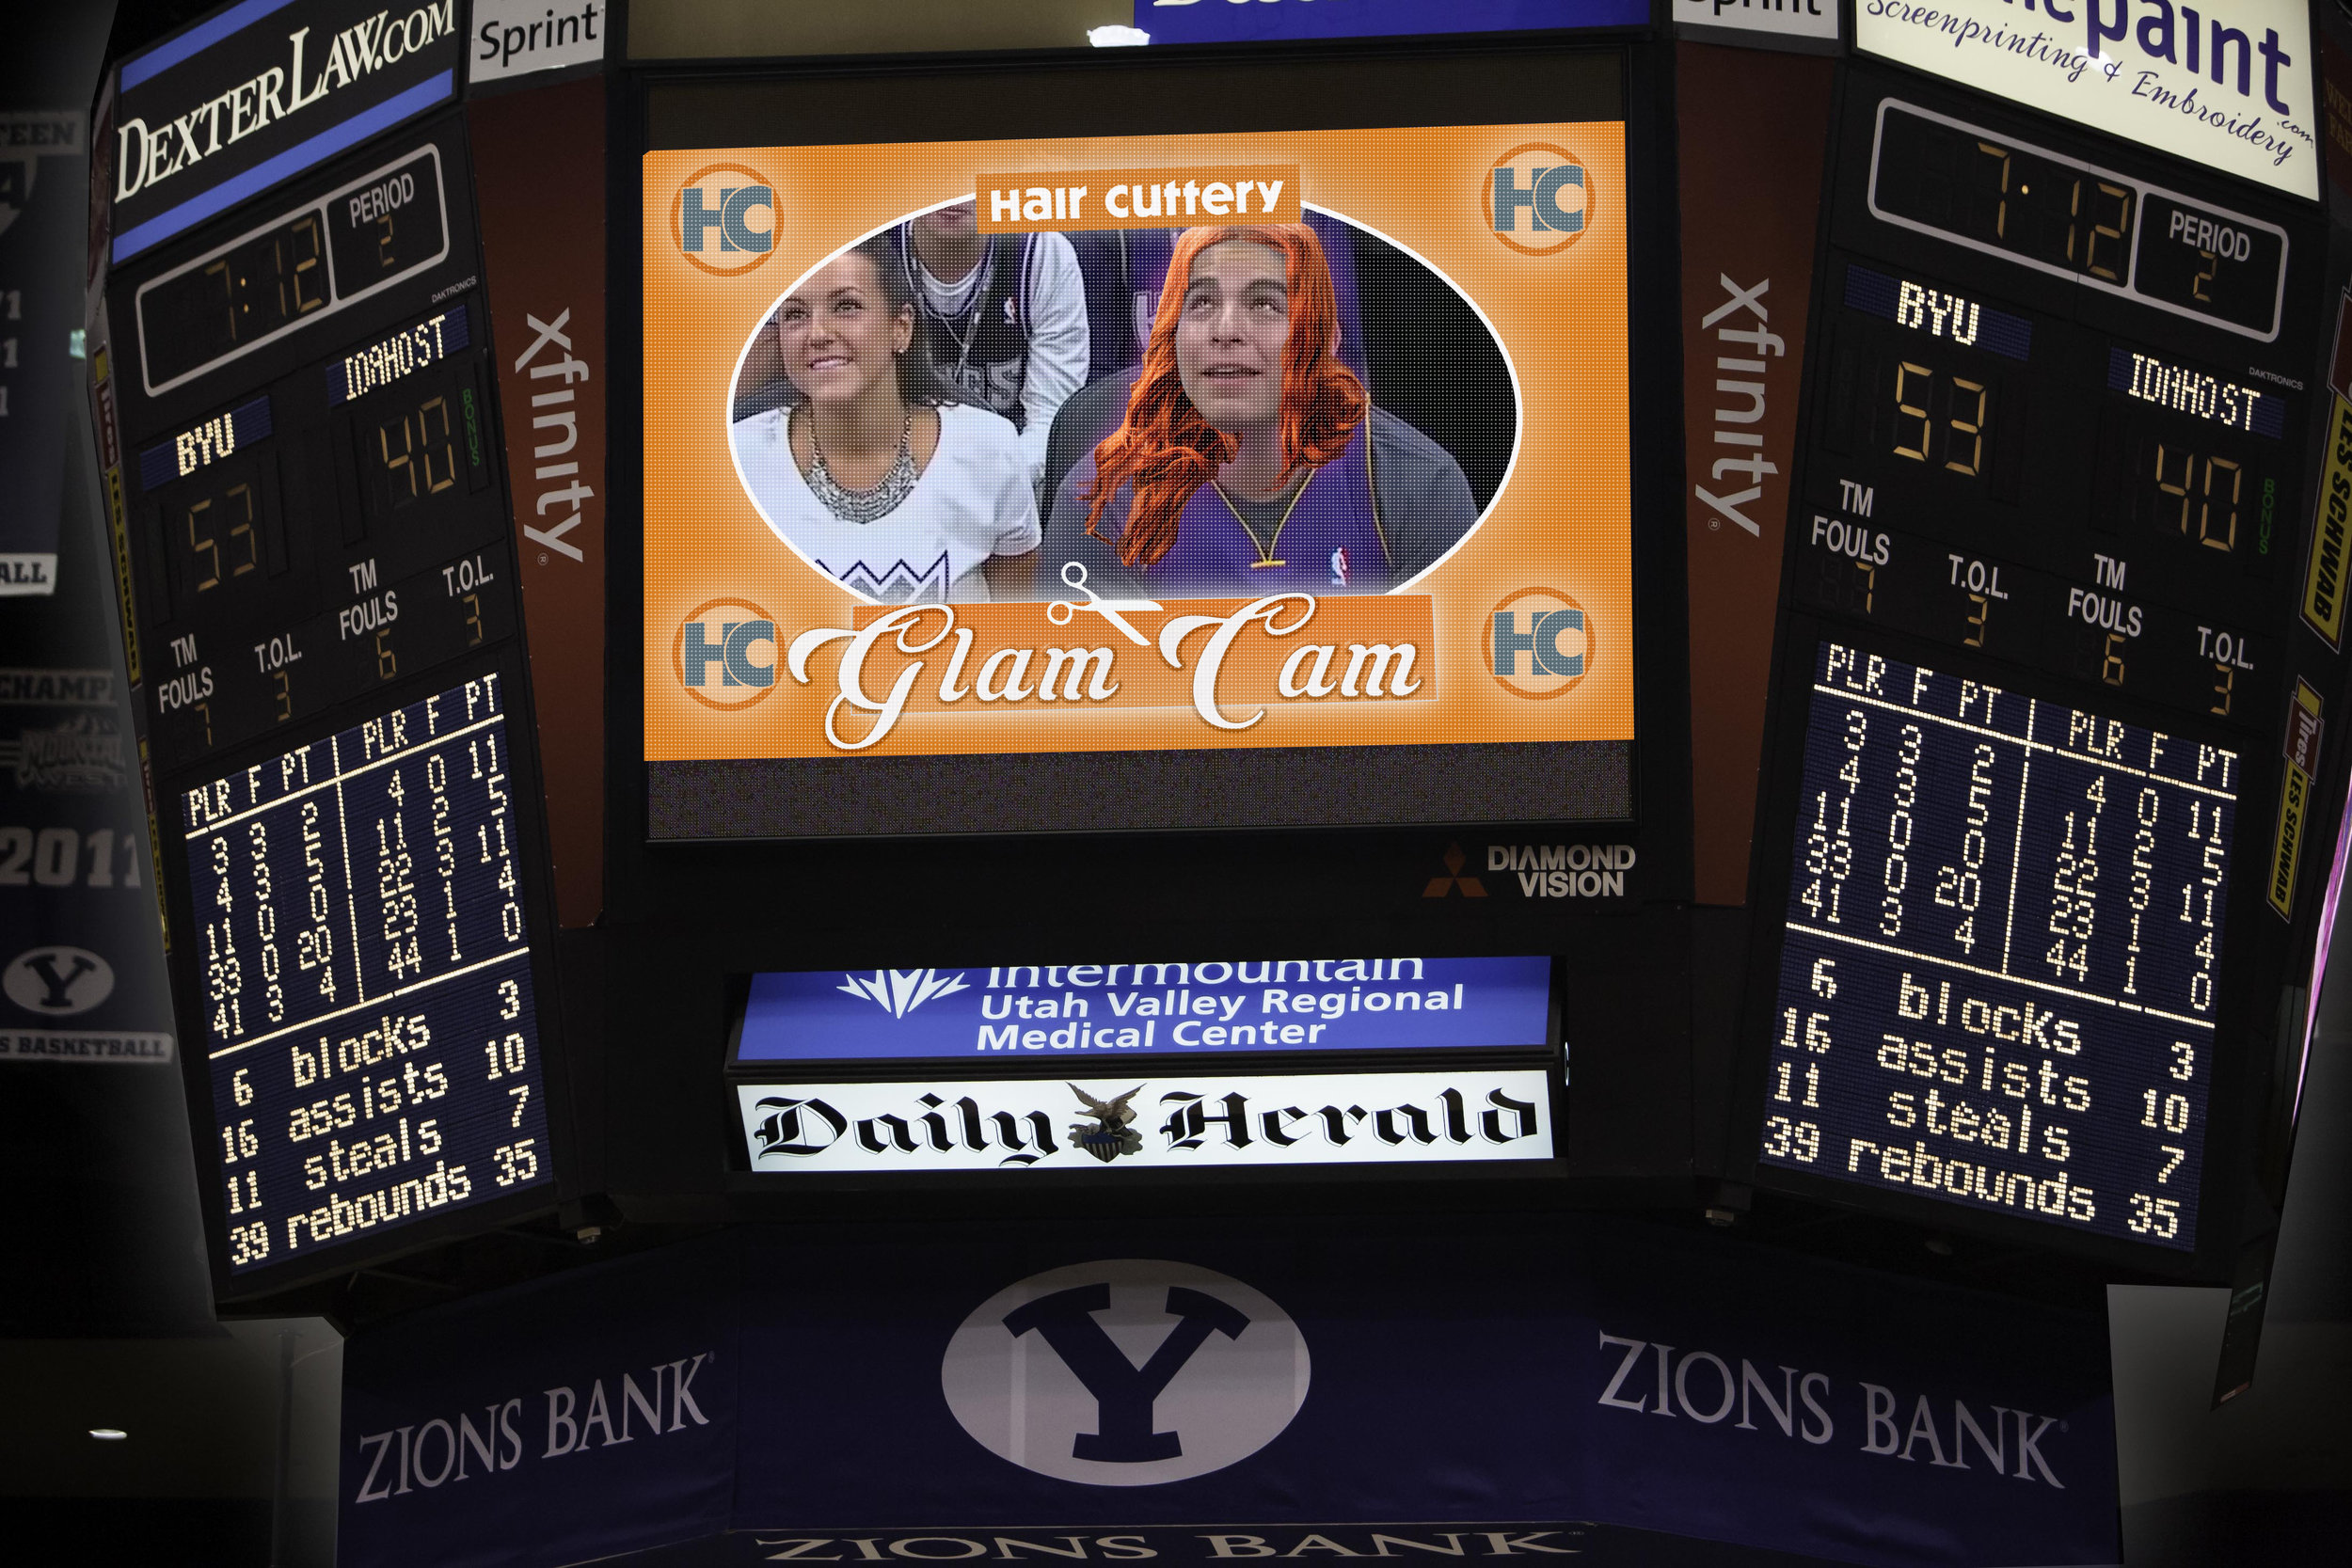 """The Hair Cuttery """"Glam Cam"""" uses AR technology to give sports fans a new do'."""